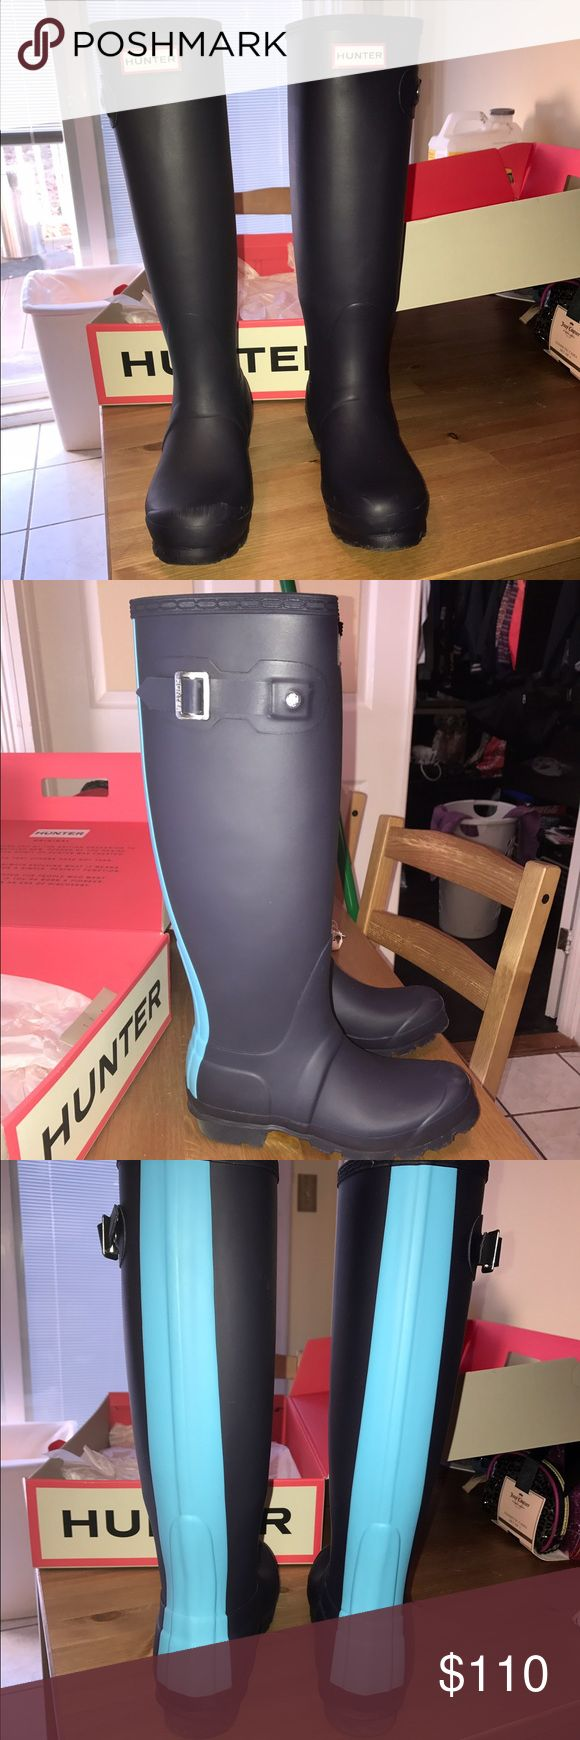 HUNTER BOOTS Recently purchased, great condition only worn once! Navy blue boots with a baby blue strip on the the back of boots! Hunter Boots Shoes Winter & Rain Boots